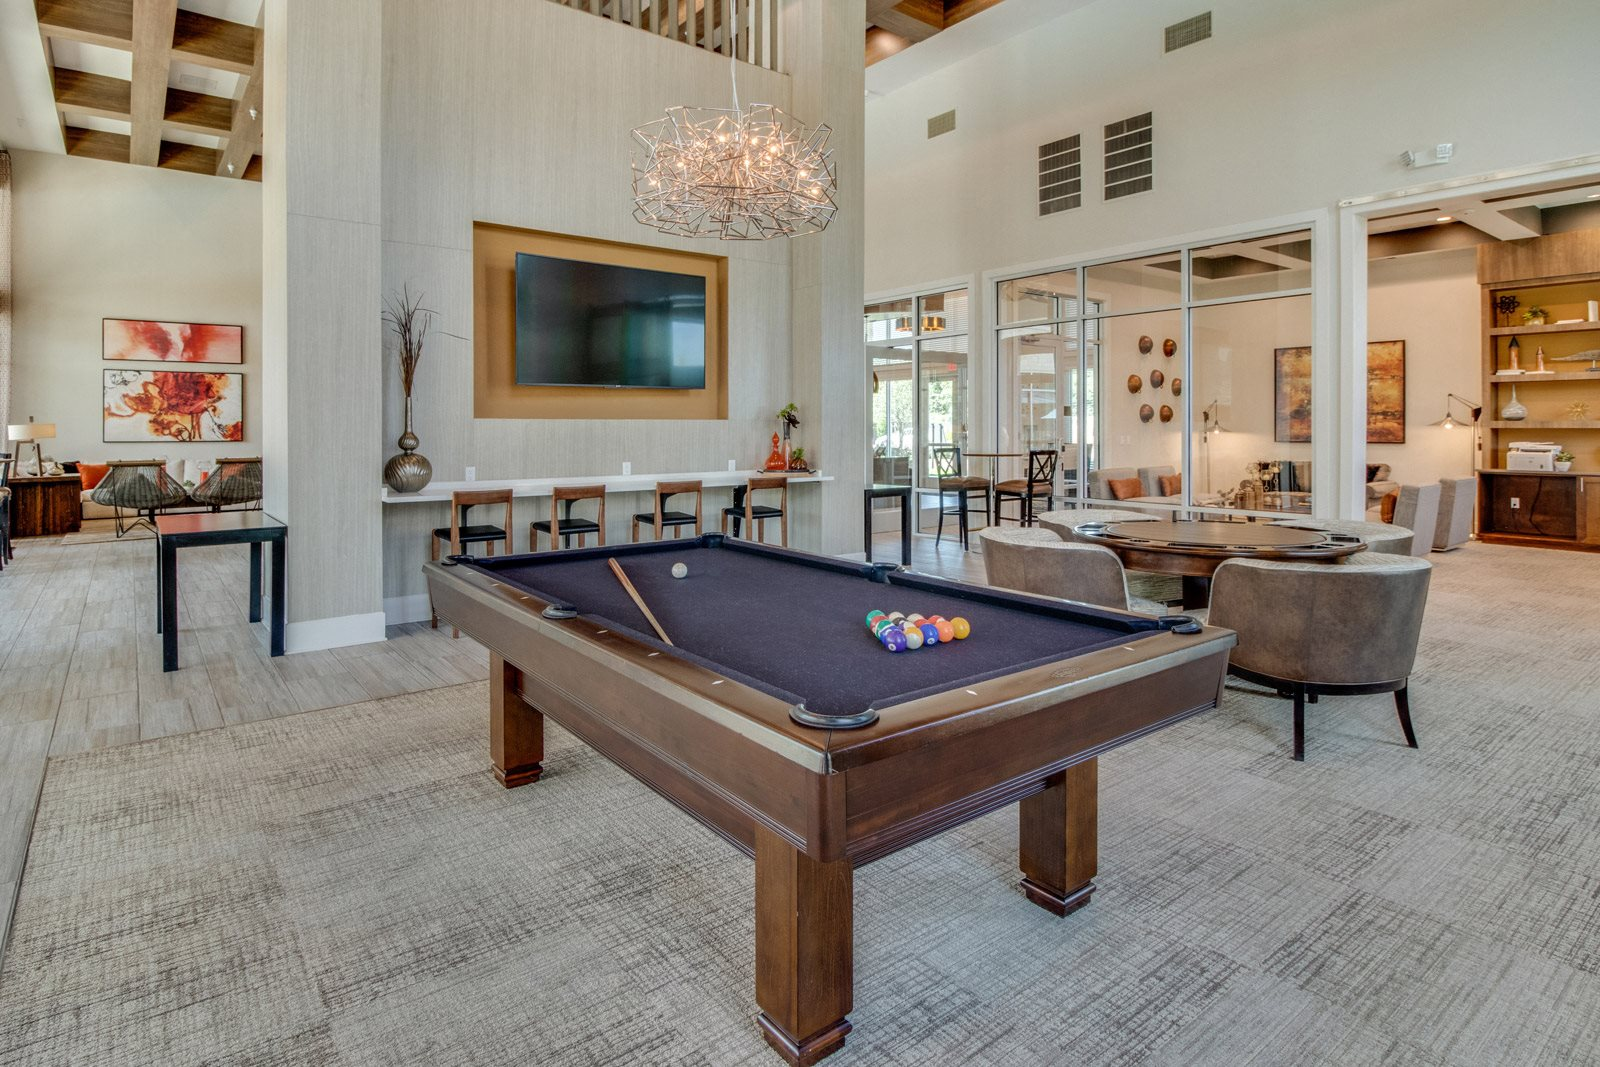 Recreation Room with Billiards Table at Windsor Republic Place, Austin, TX